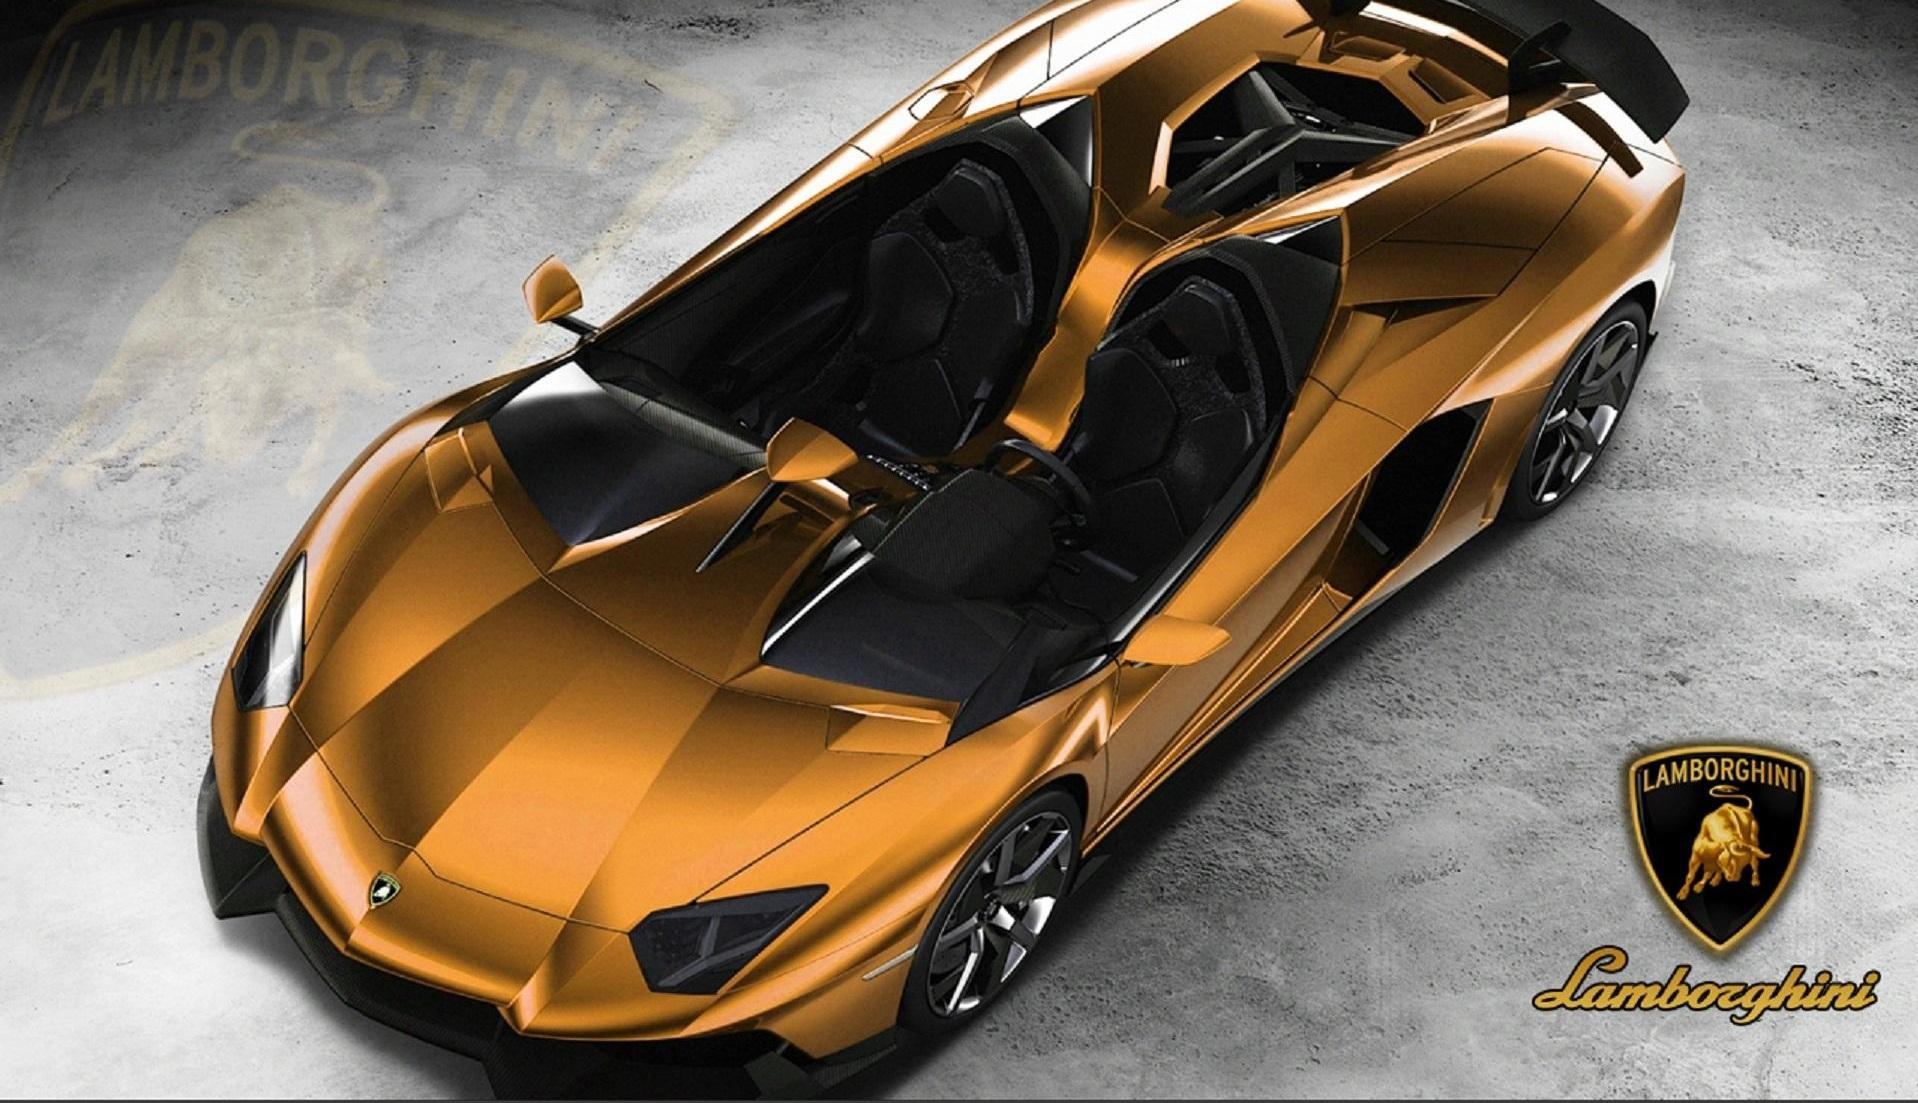 Lamborghini Aventador J Wallpapers , Wallpaper Cave